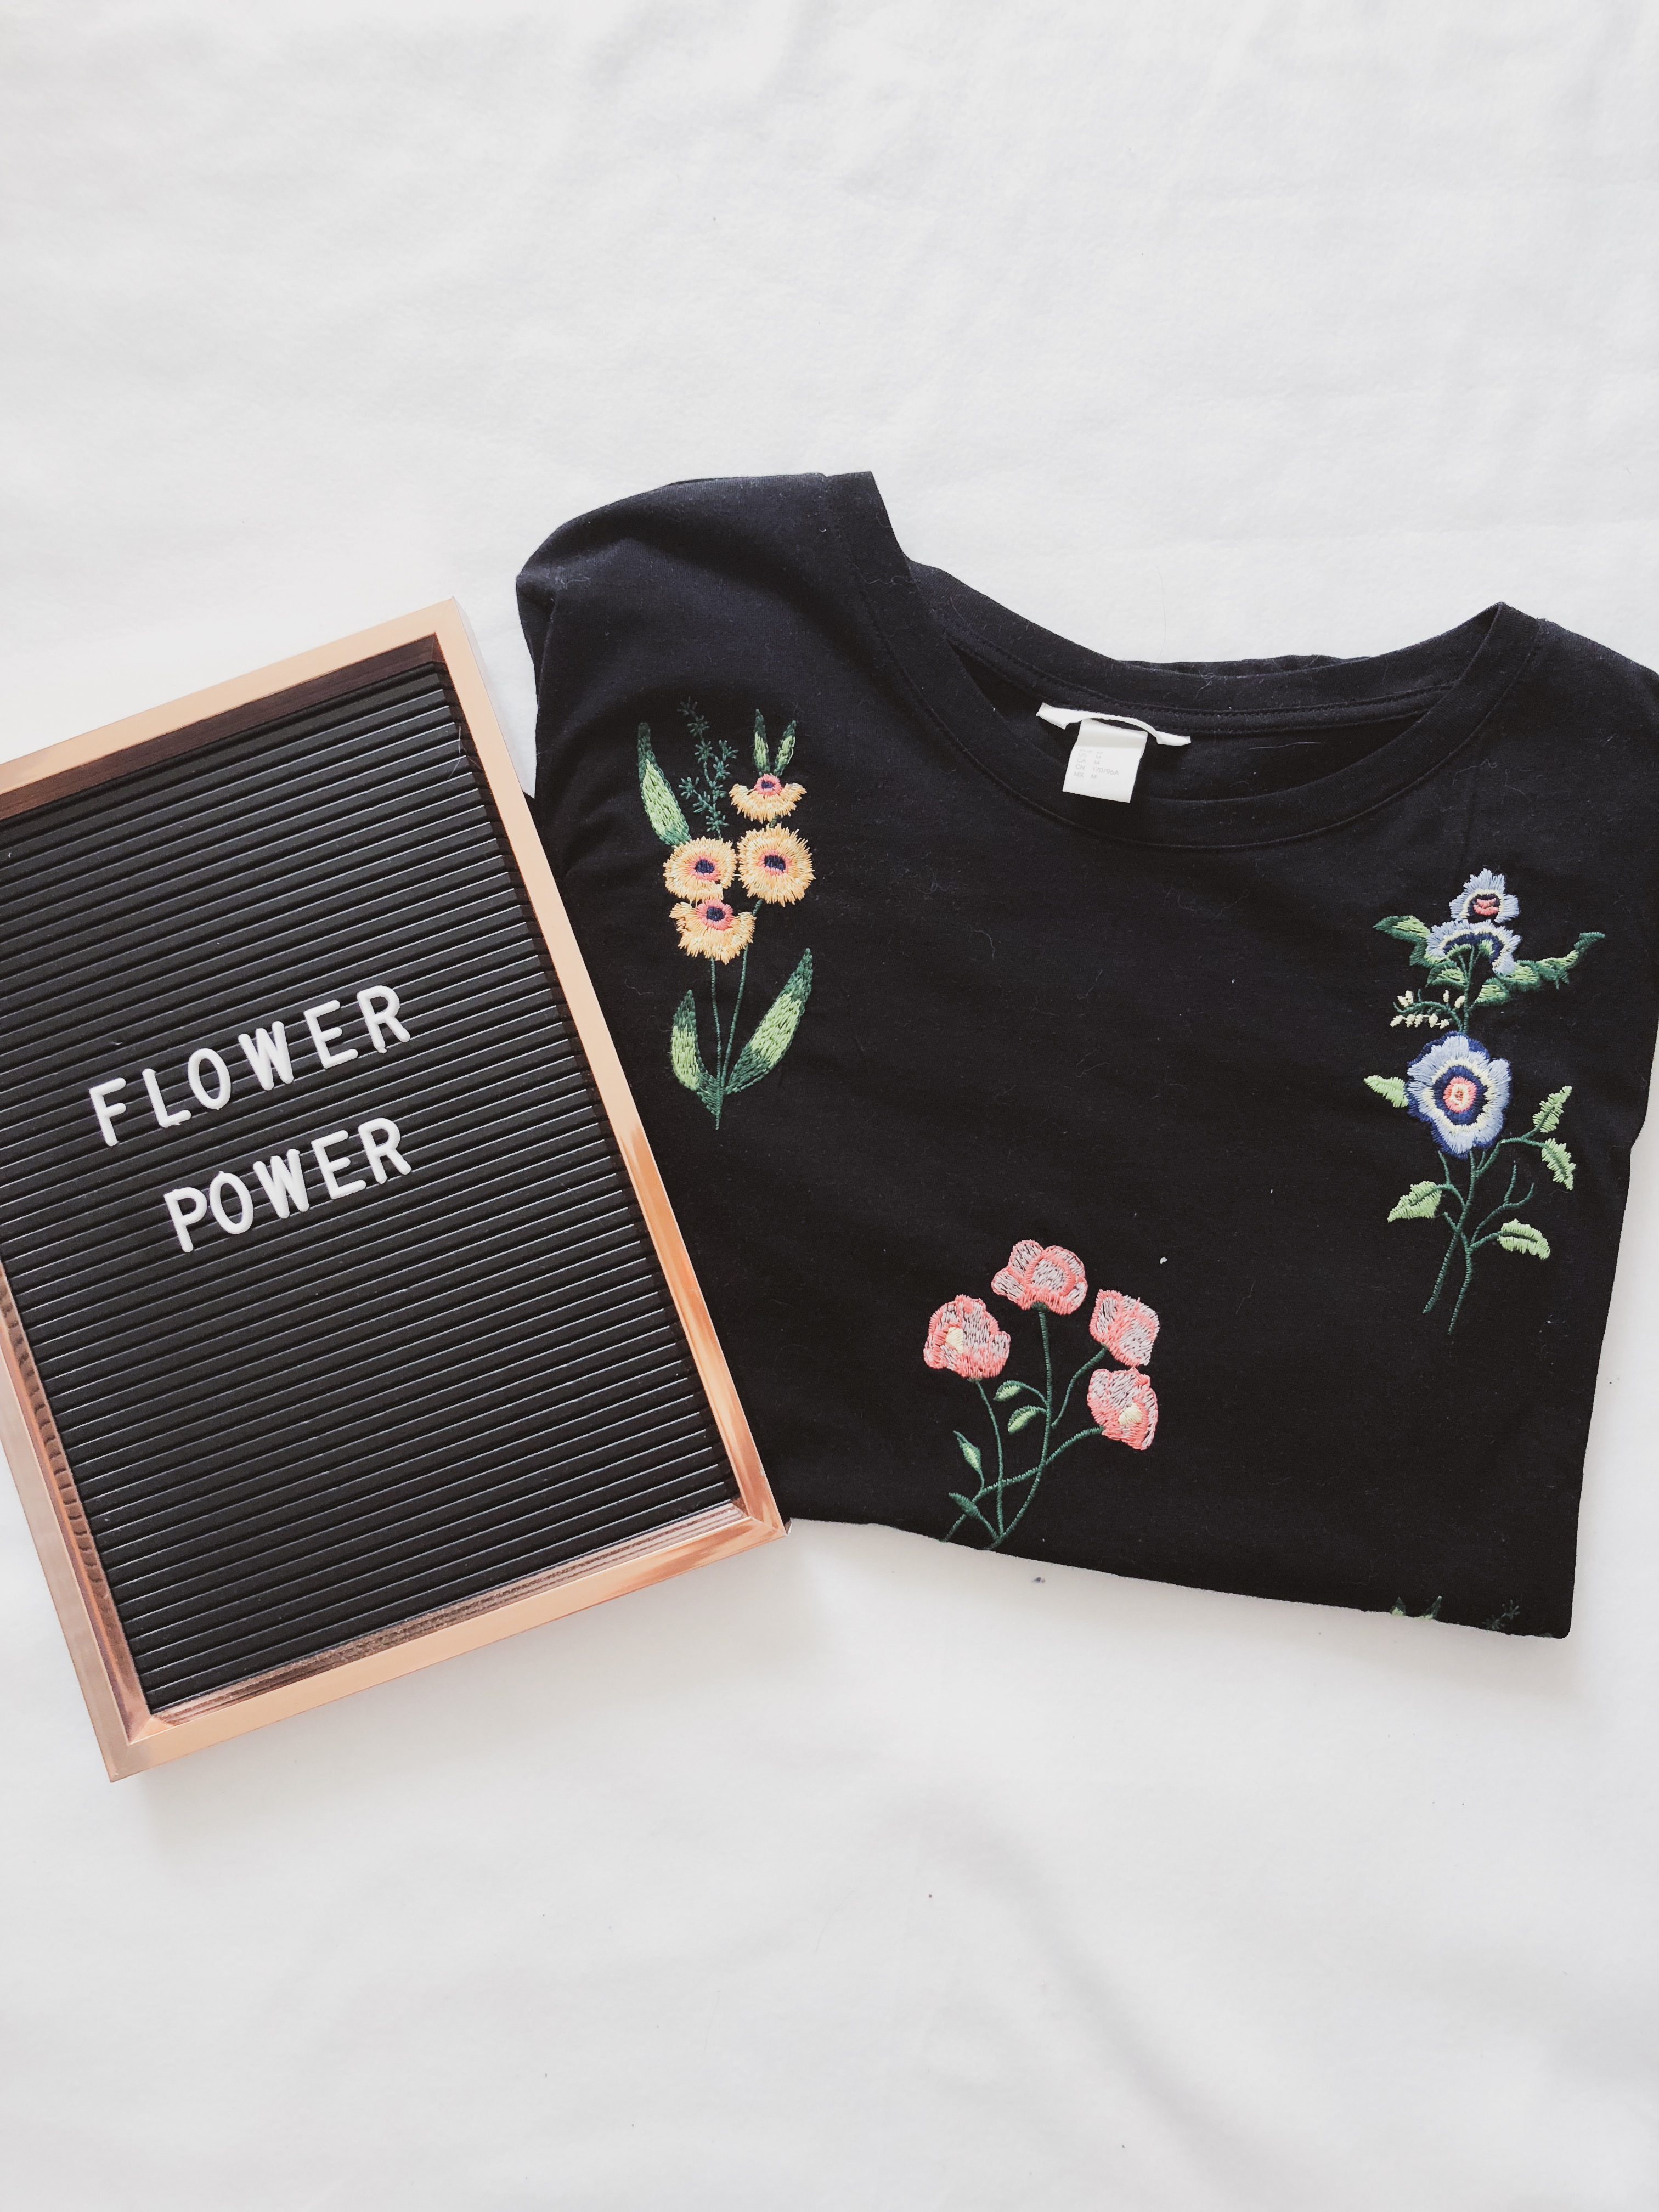 What I got in sales: Black flower t-shirt H&M